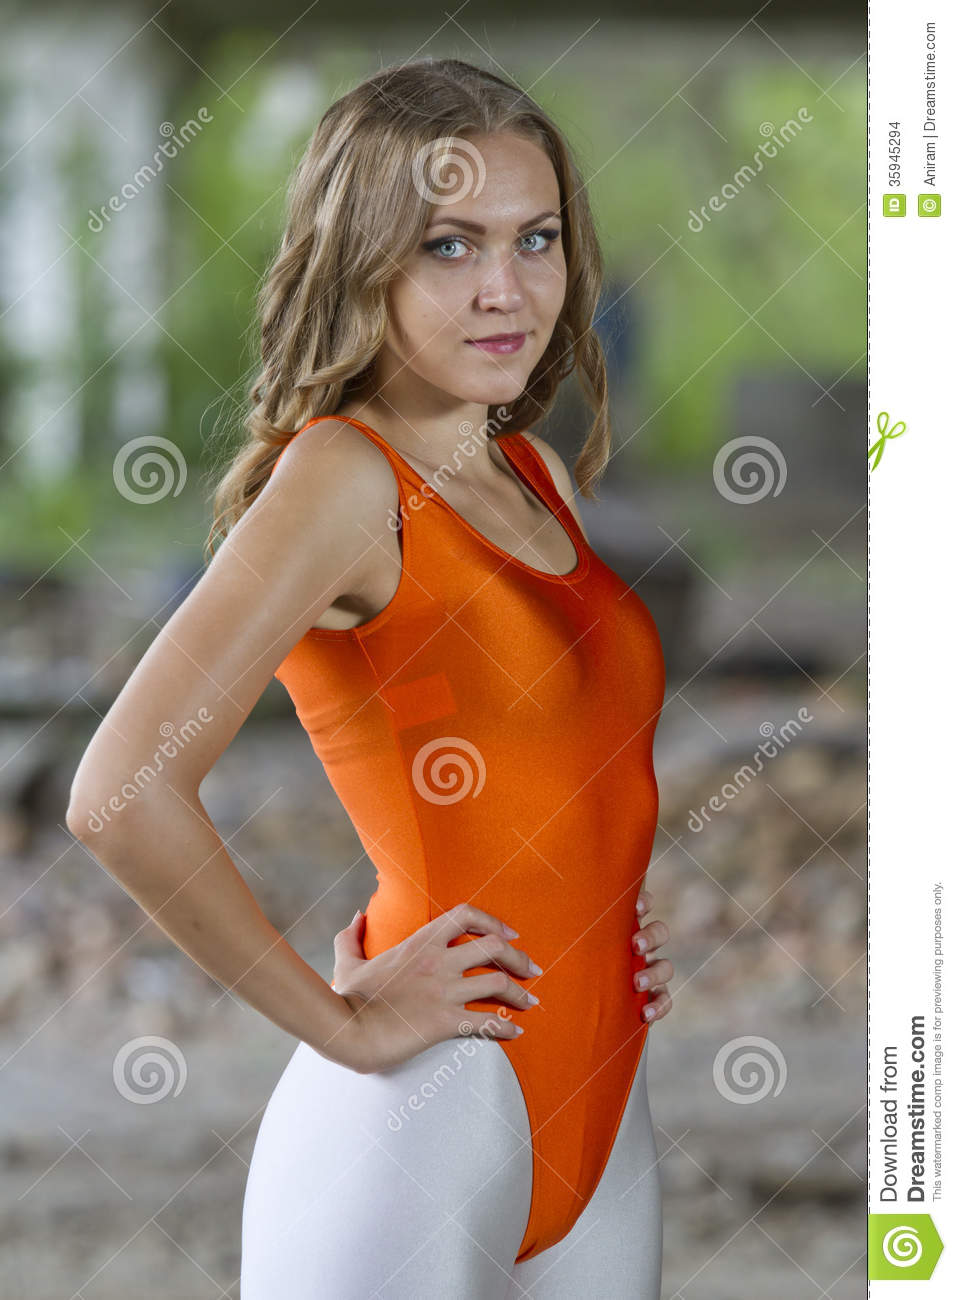 Fitness Woman In Leotard Stock Images - Image: 35945294